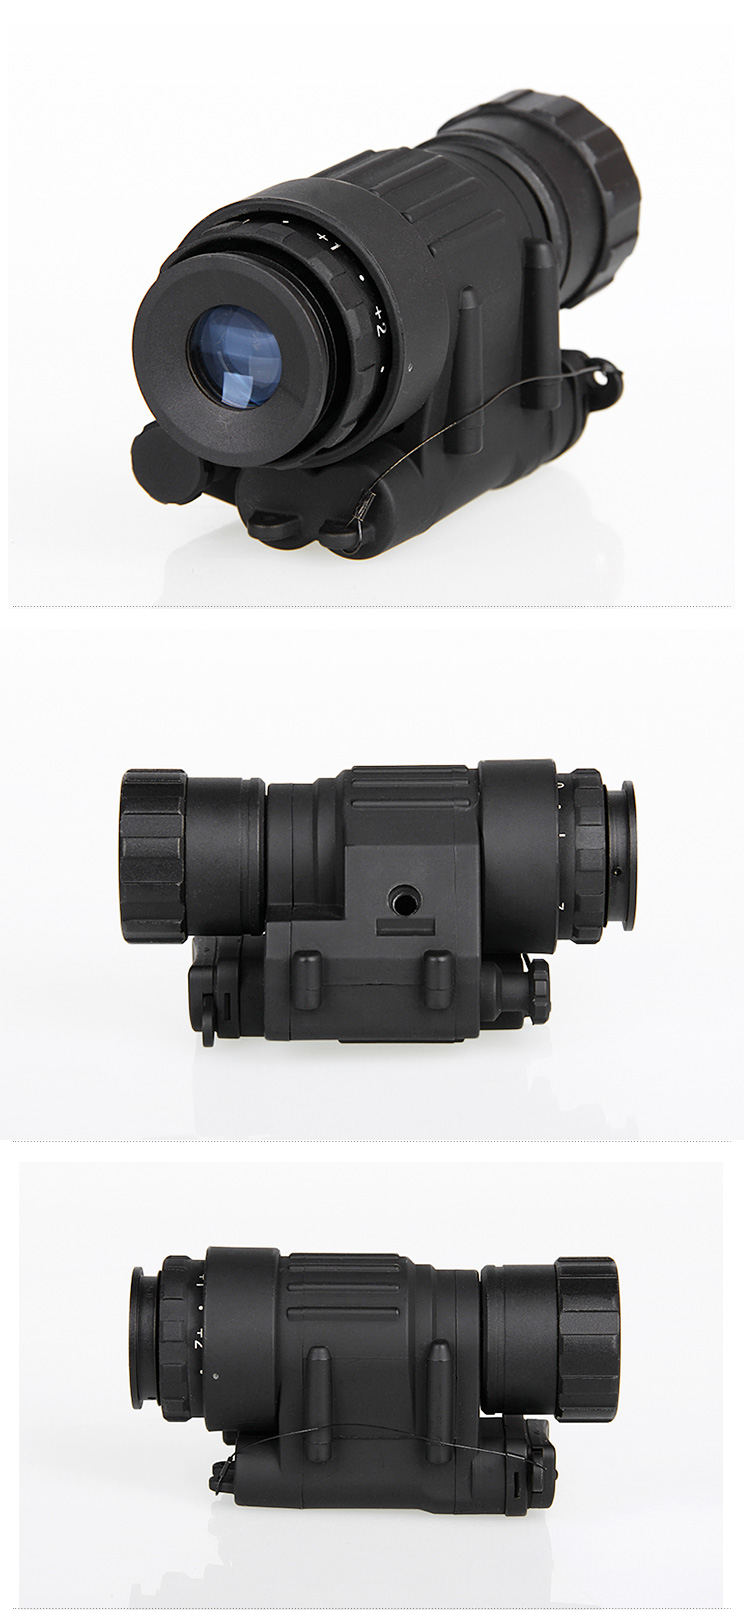 Military Night Vision Scope Pro